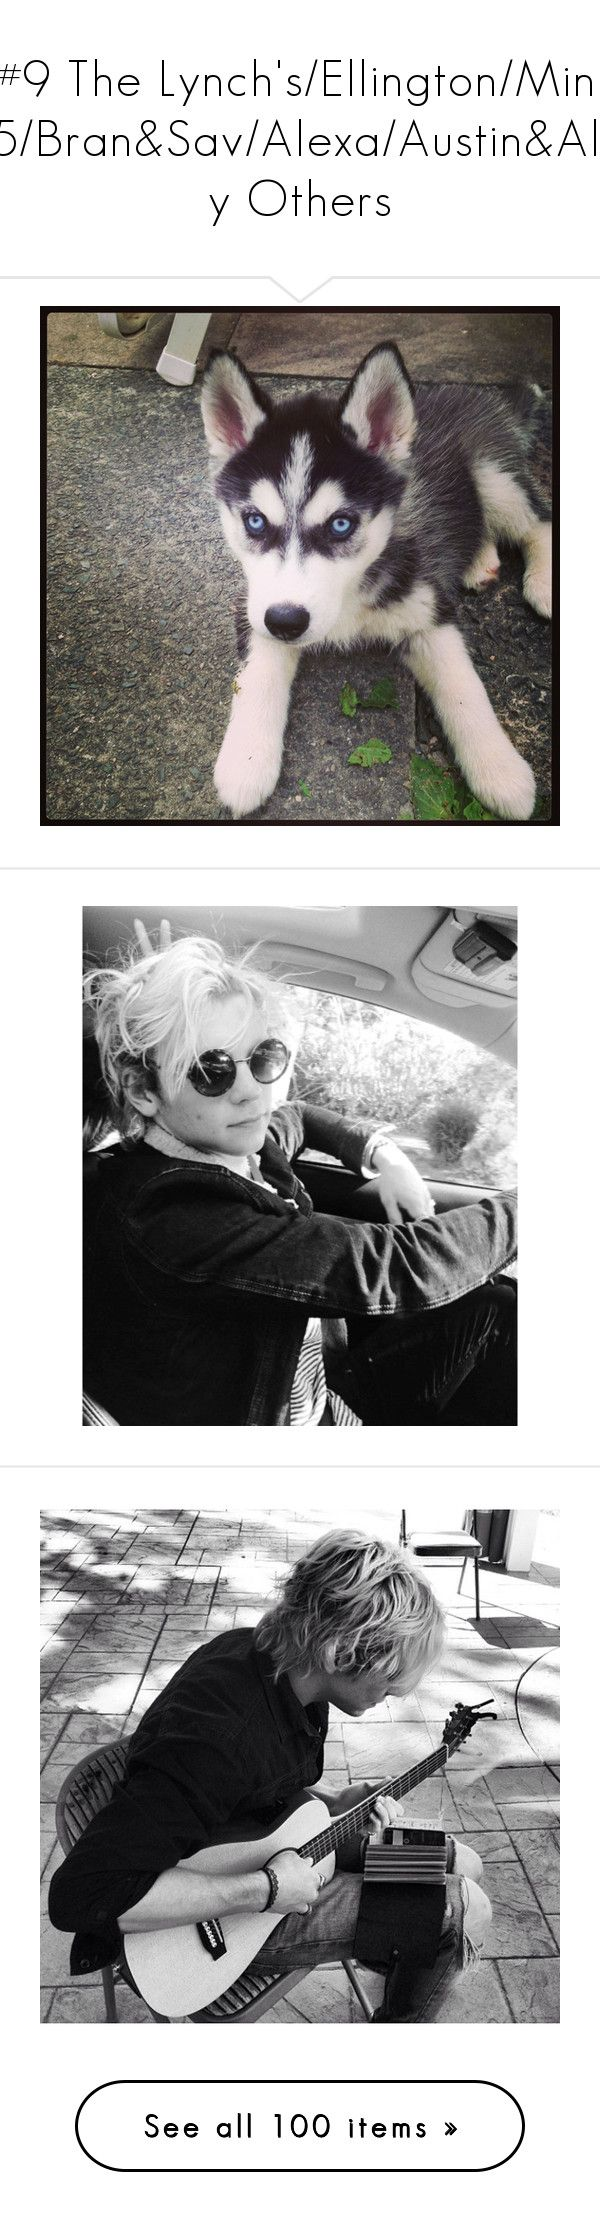 """""""#9 The Lynch's/Ellington/Mini R5/Bran&Sav/Alexa/Austin&Ally y Others"""" by vivianr5 ❤ liked on Polyvore featuring animals, r5, mermaids, pictures, backgrounds, photos, pics, phrase, quotes and saying"""